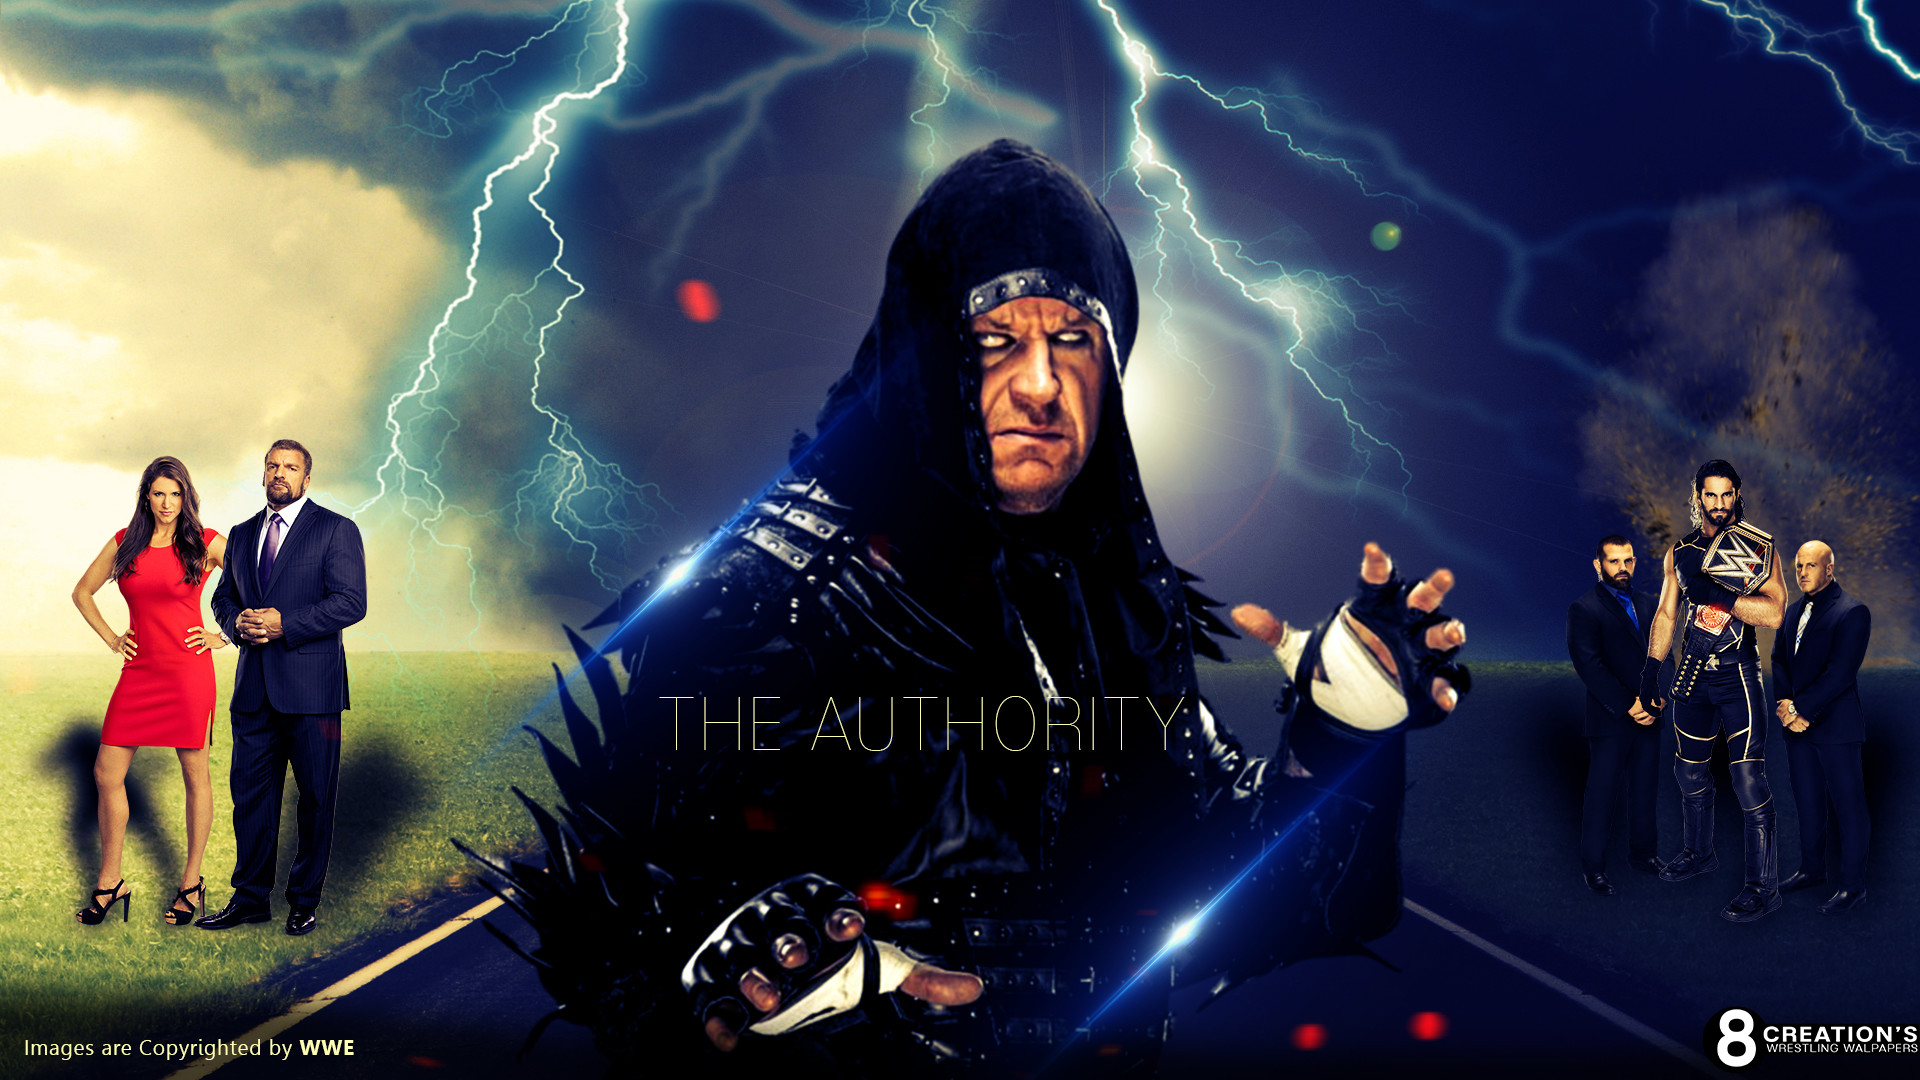 1920x1080 Undertaker Wallpaper by Arunraj1791 Undertaker Wallpaper by Arunraj1791